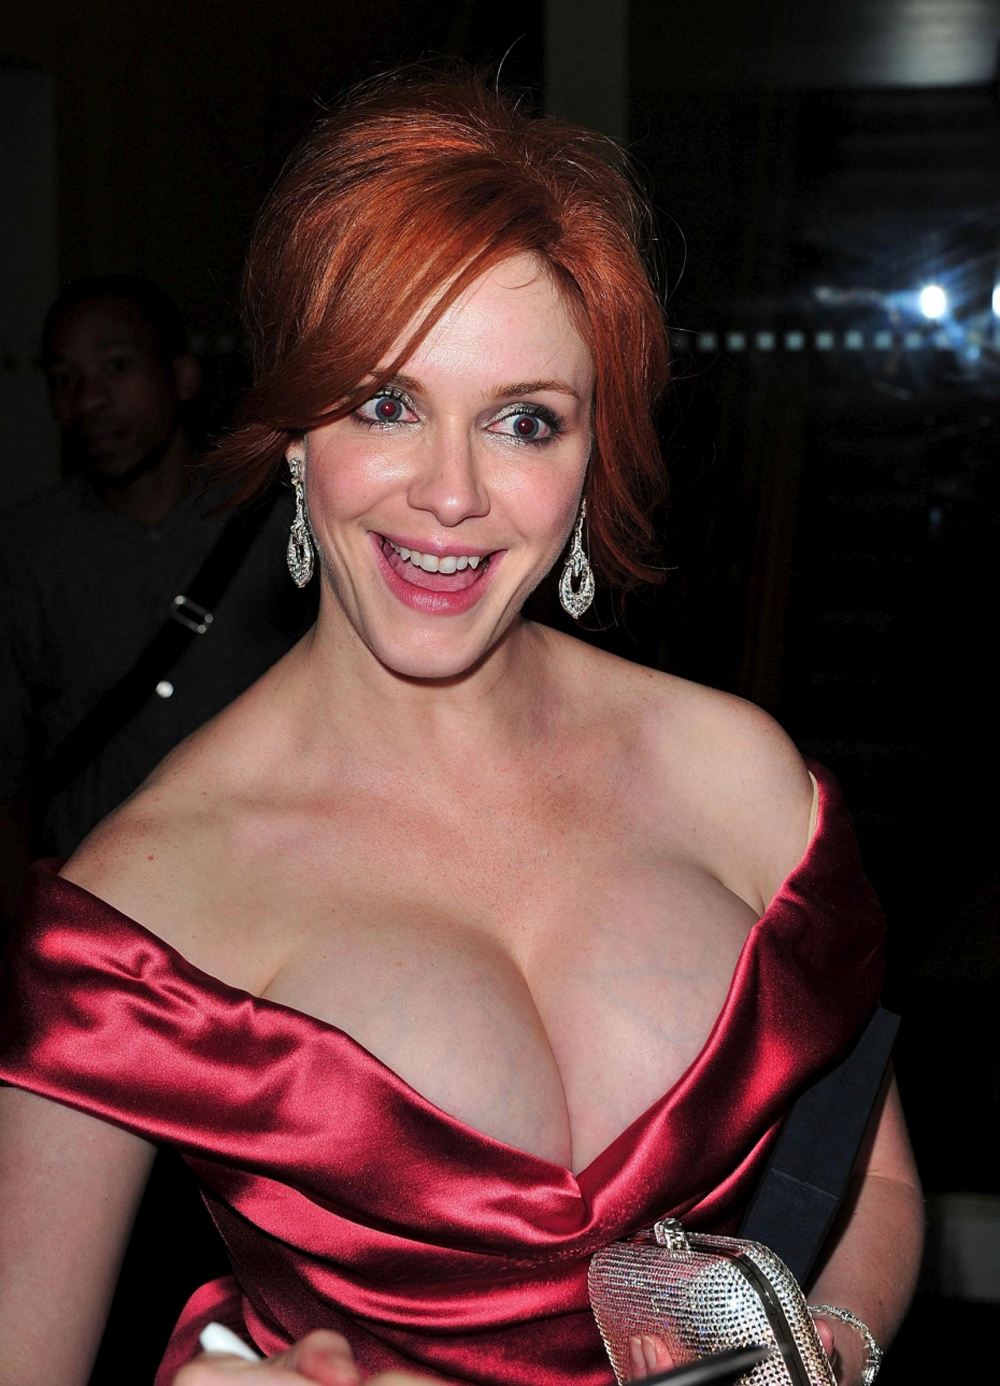 christina-hendricks-sexy-images